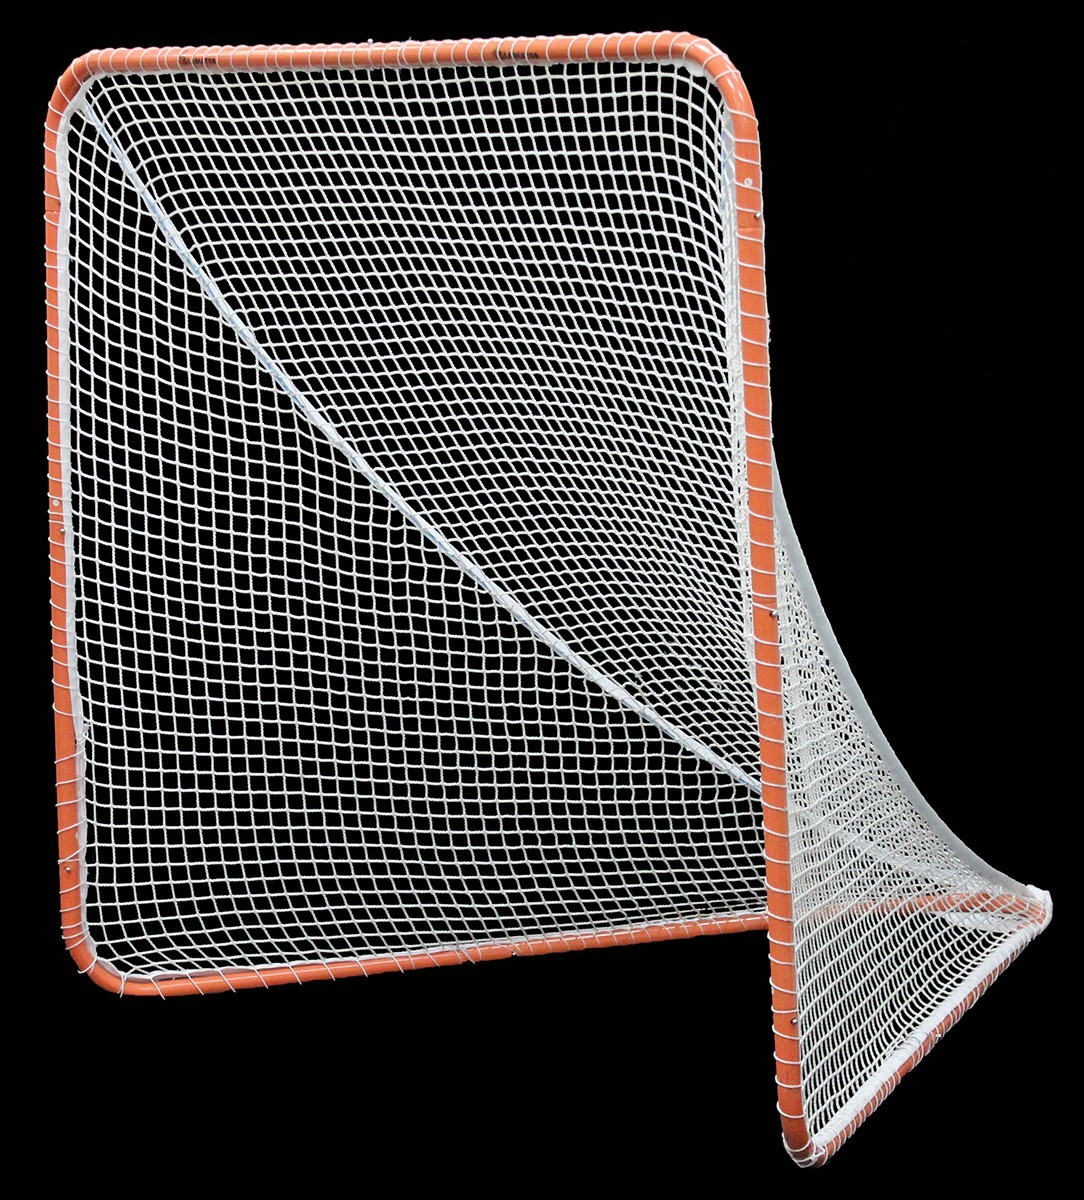 Net used for rounded corner goals, goal not included